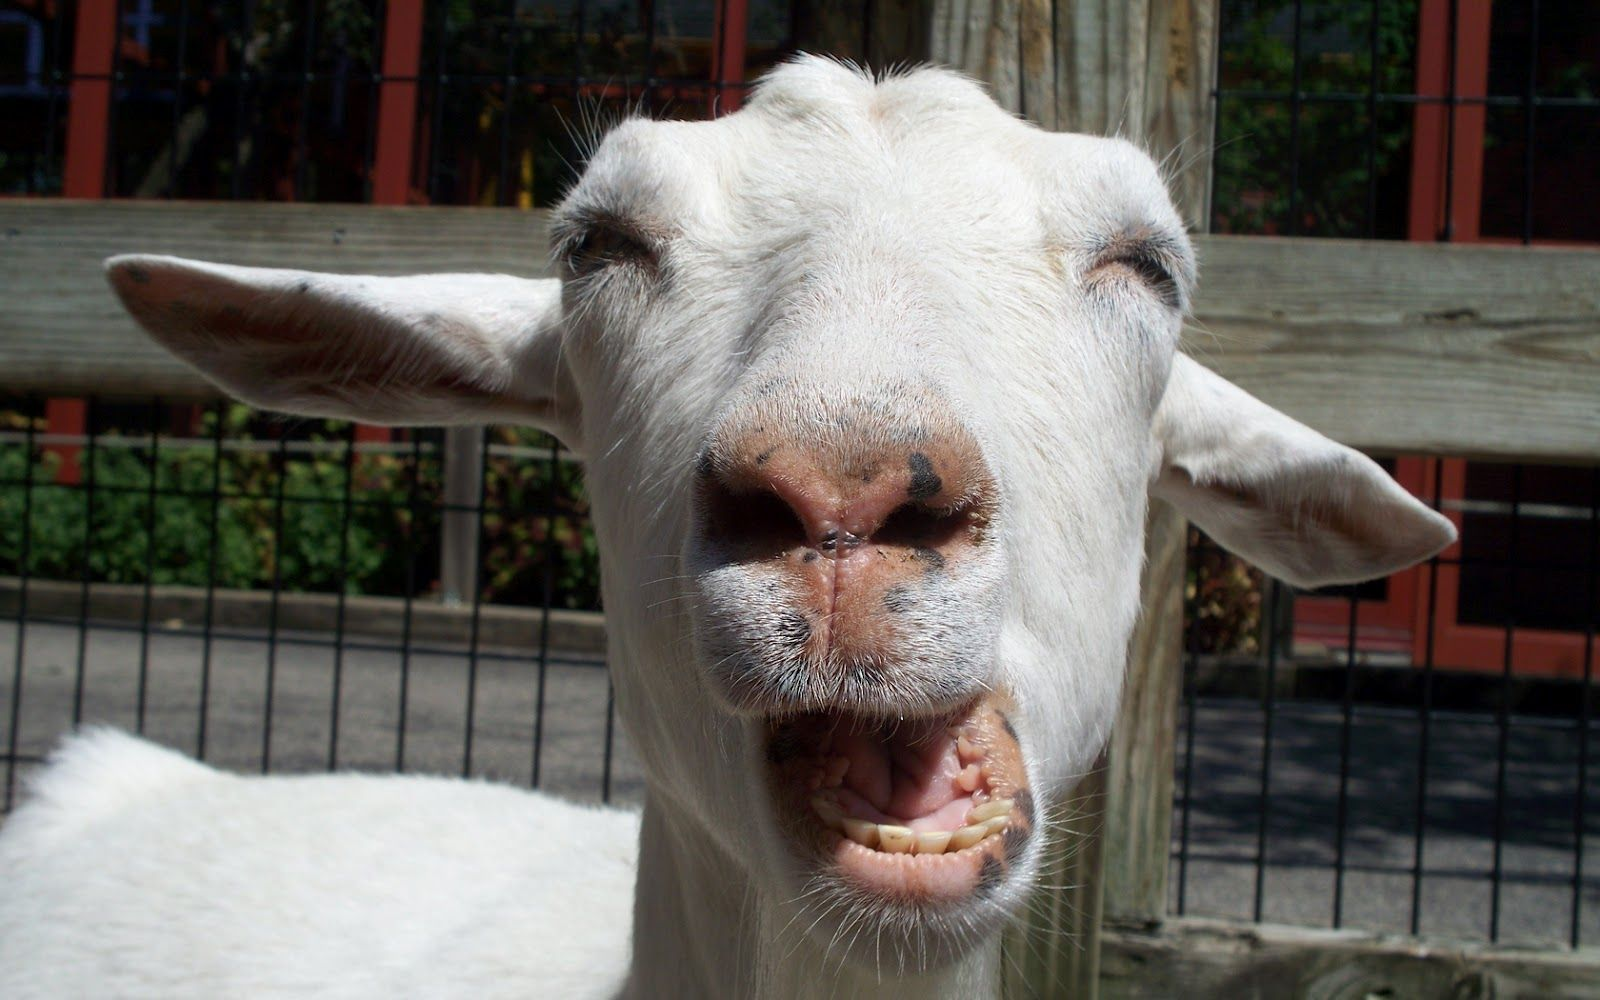 Maprox Hd Funny Goats Pictures Images Photos Funny Goat Pictures Awkward Animals Funny Sheep